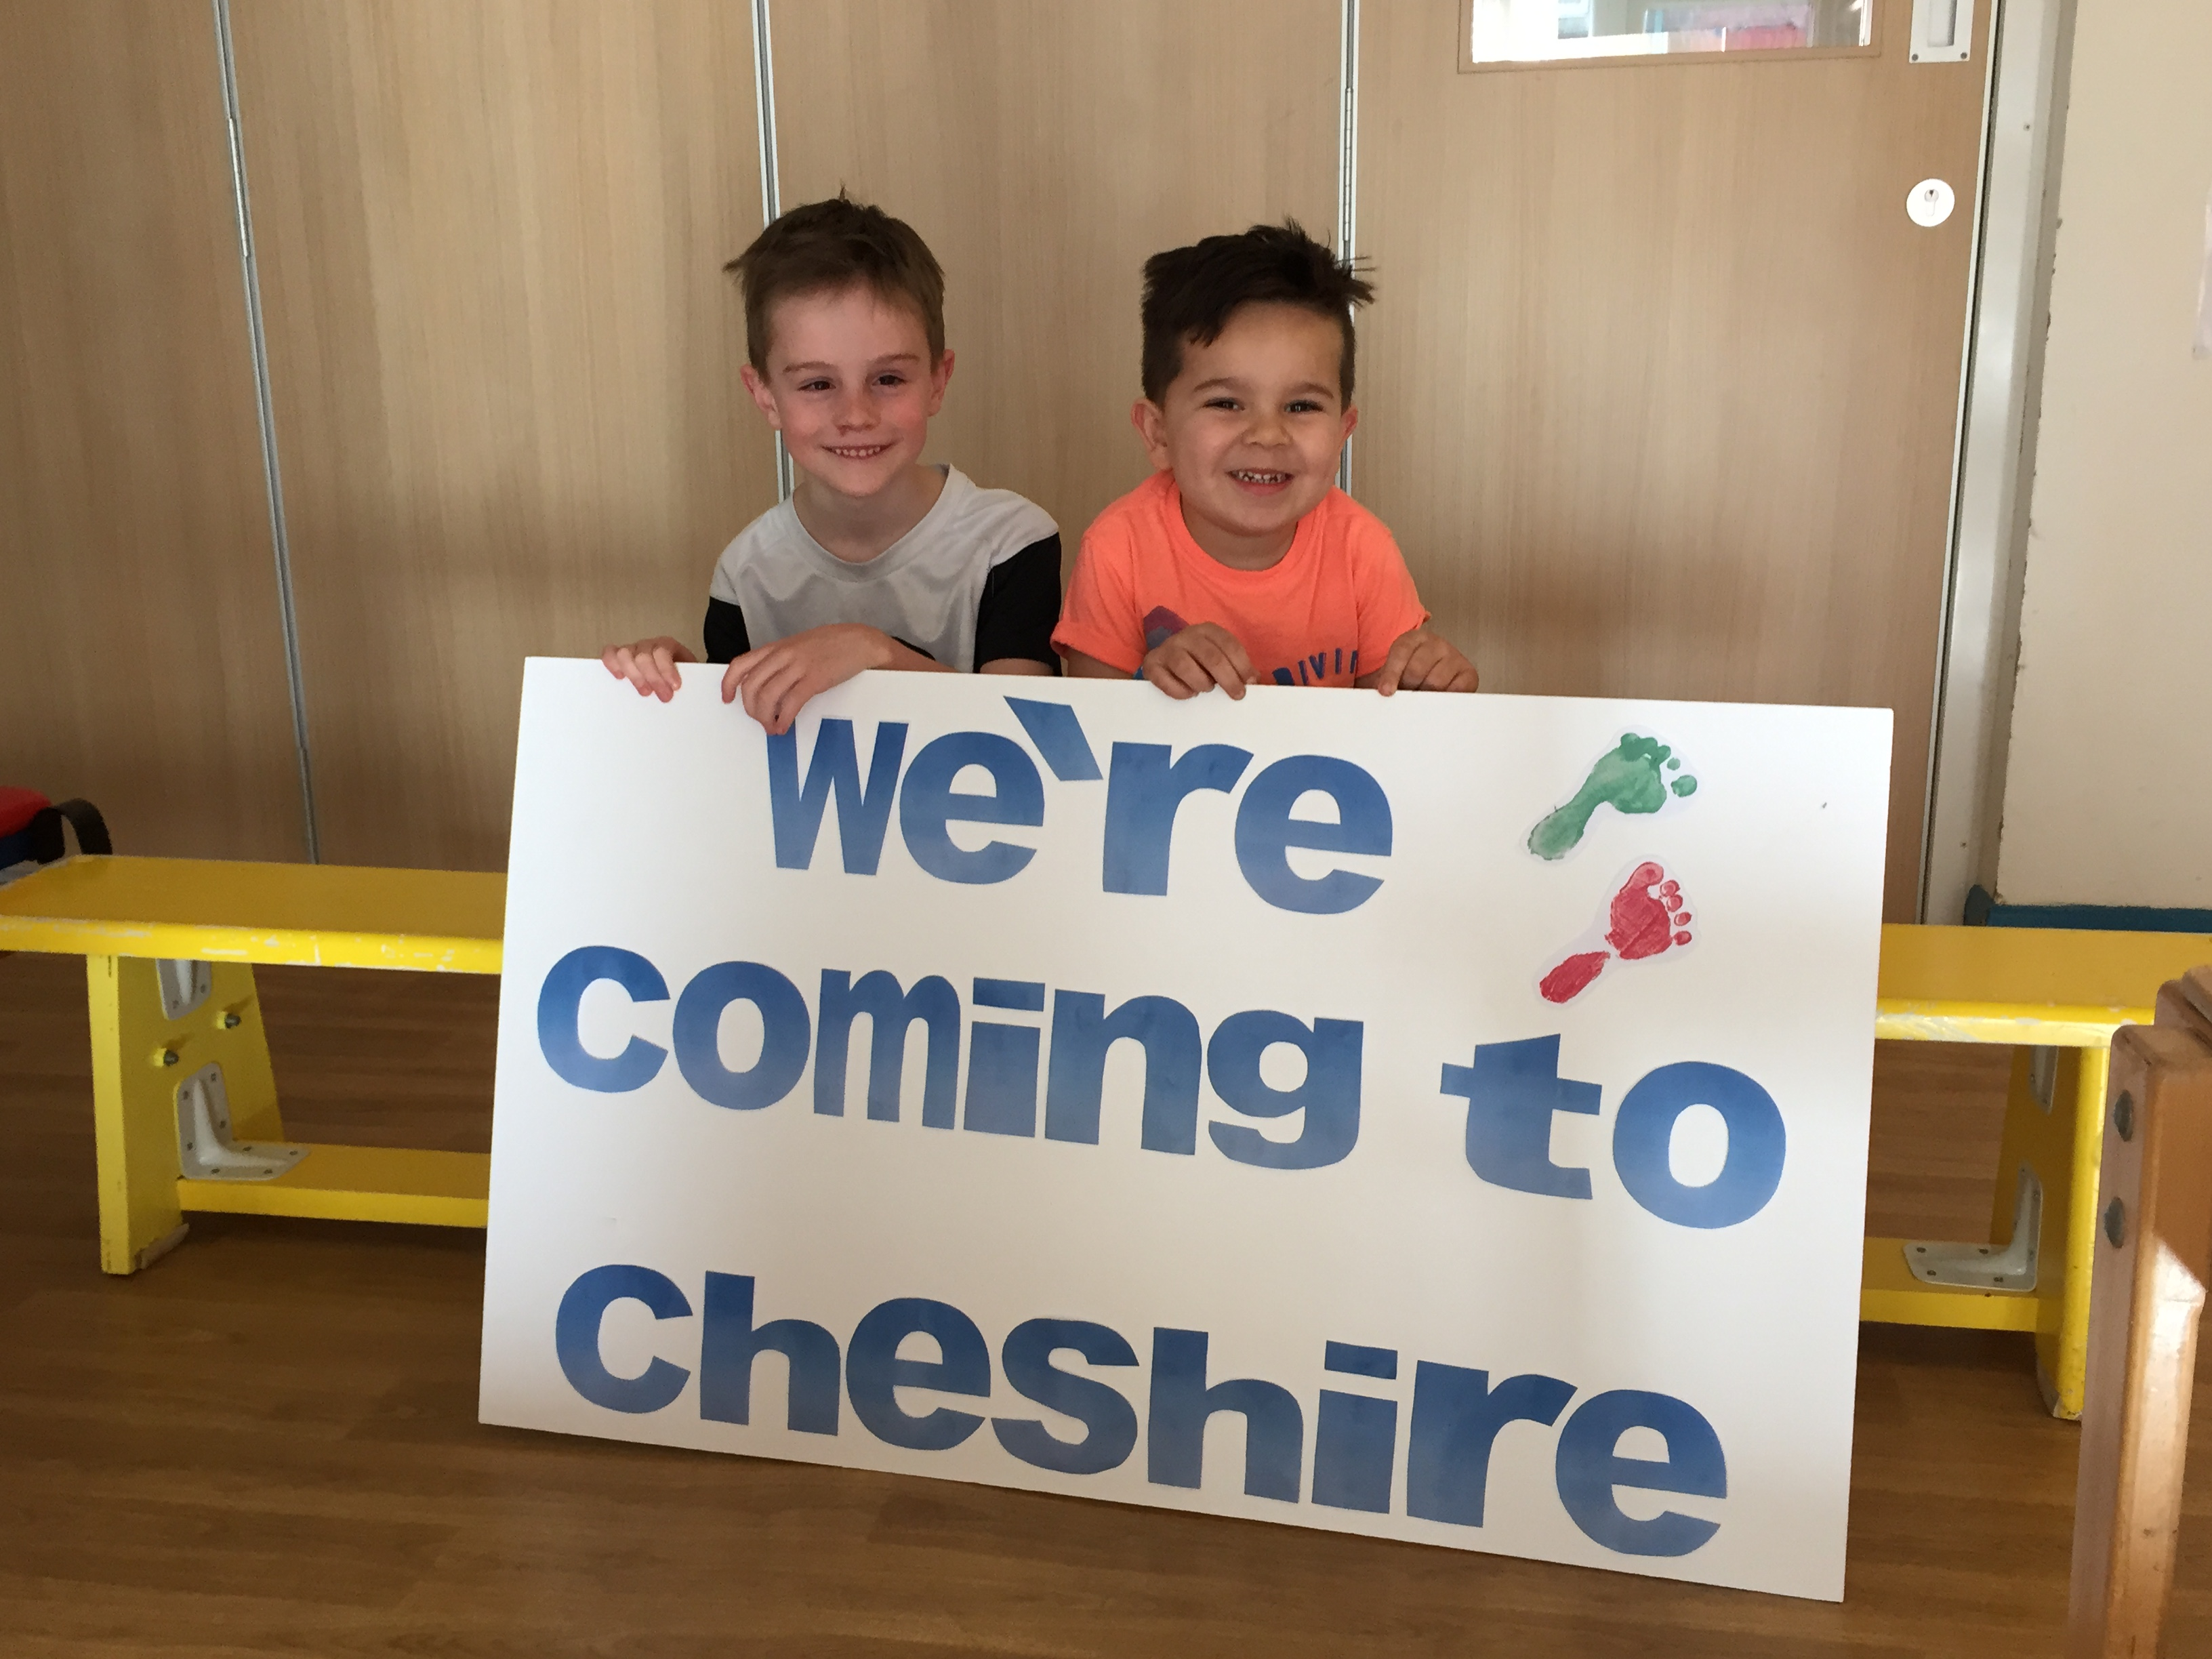 Children's charity Stick 'n' Step doubles reach with expansion into Cheshire